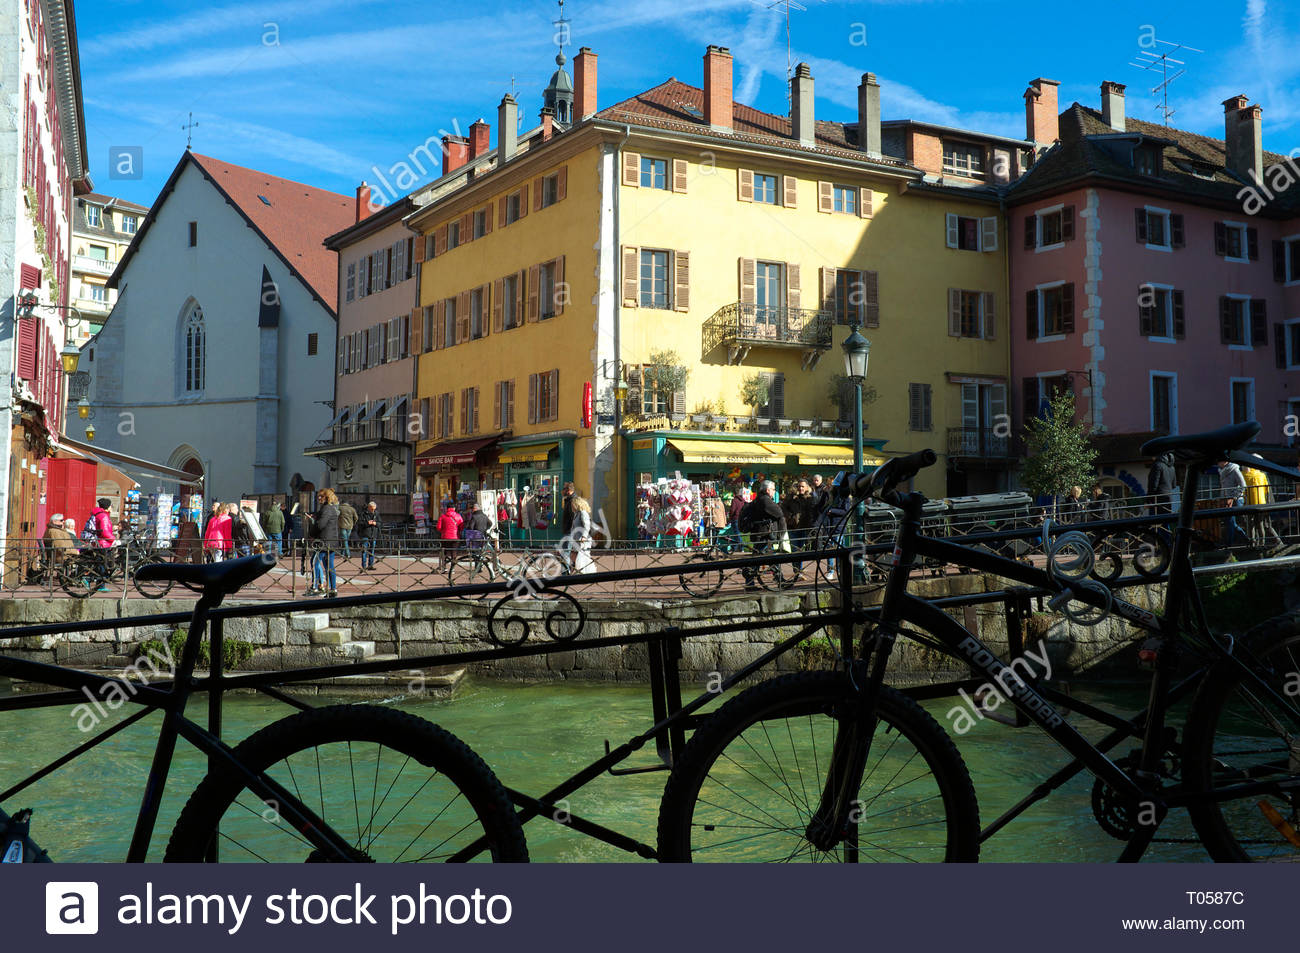 View in the old town area of Annecy, by the river (Le Thiou). Annecy. Auvergne-Rhone-Alpes, south east France. Stock Photo